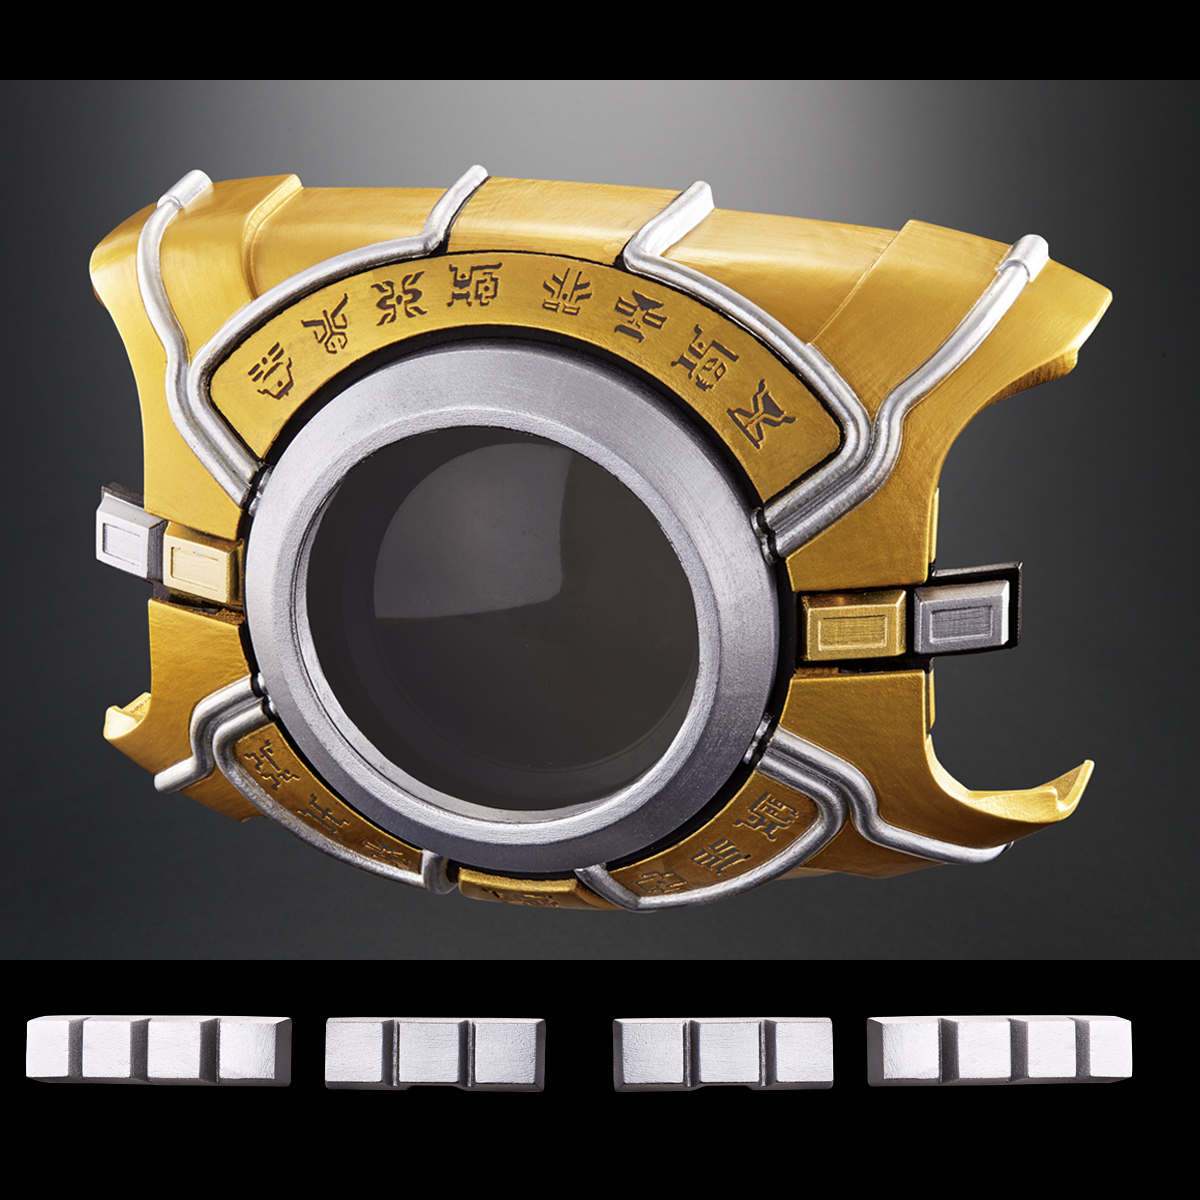 COMPLETE SELECTION MODIFICATION HENSHIN BELT ARCLE